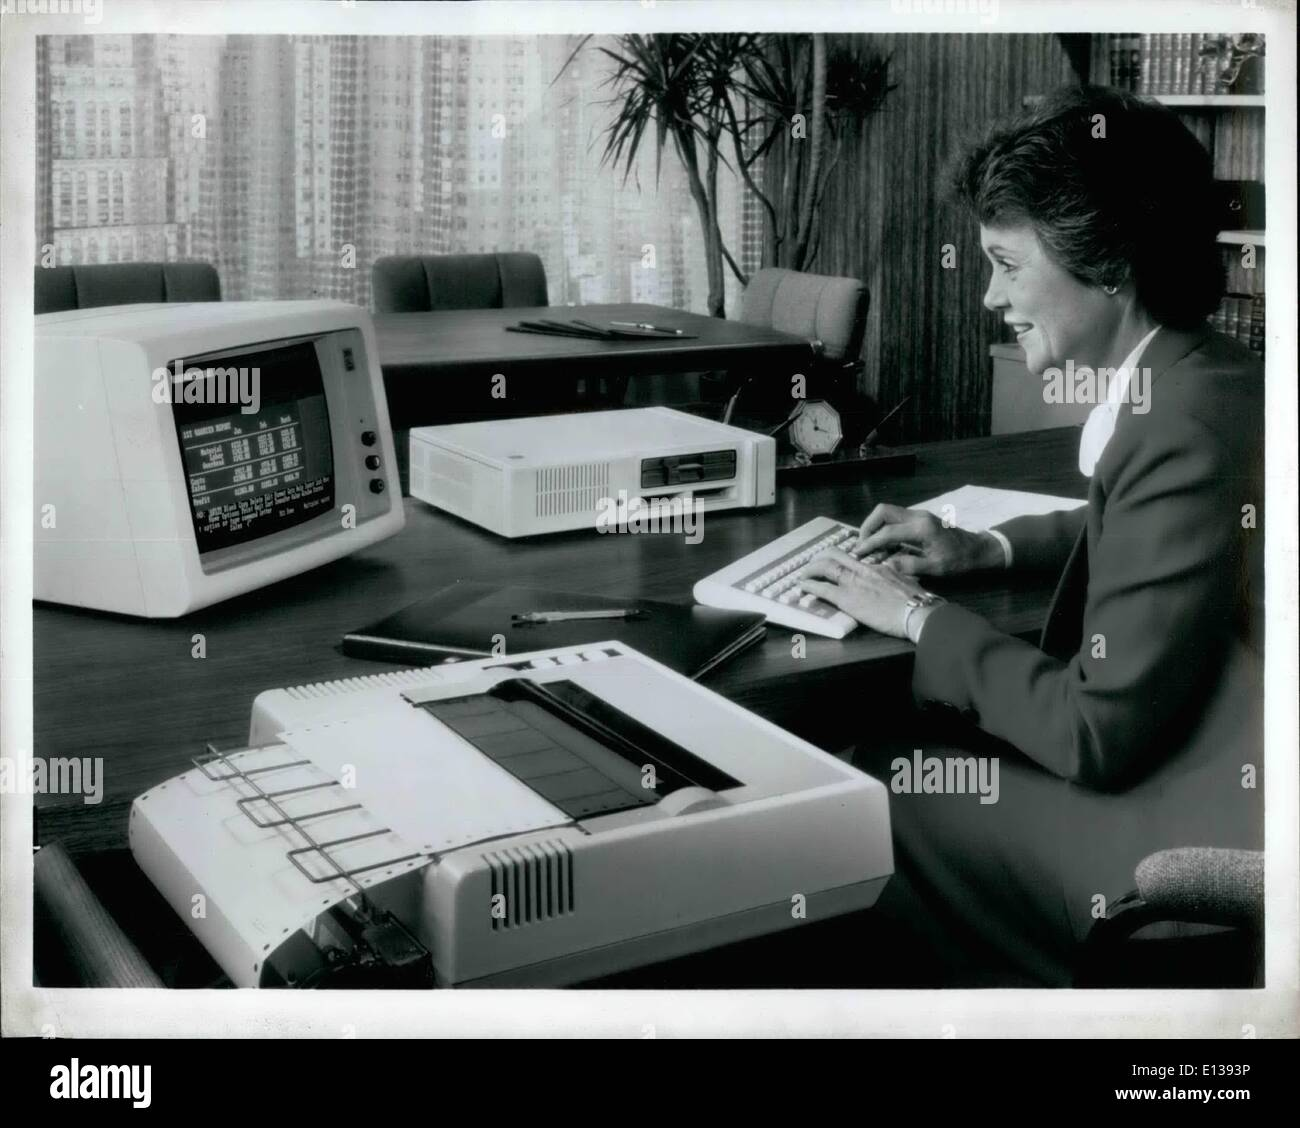 Feb. 29, 2012 - The Most Affordable computer ever offered by IBM, the Pcjr, is an easy-to-use and versatile system - Stock Image